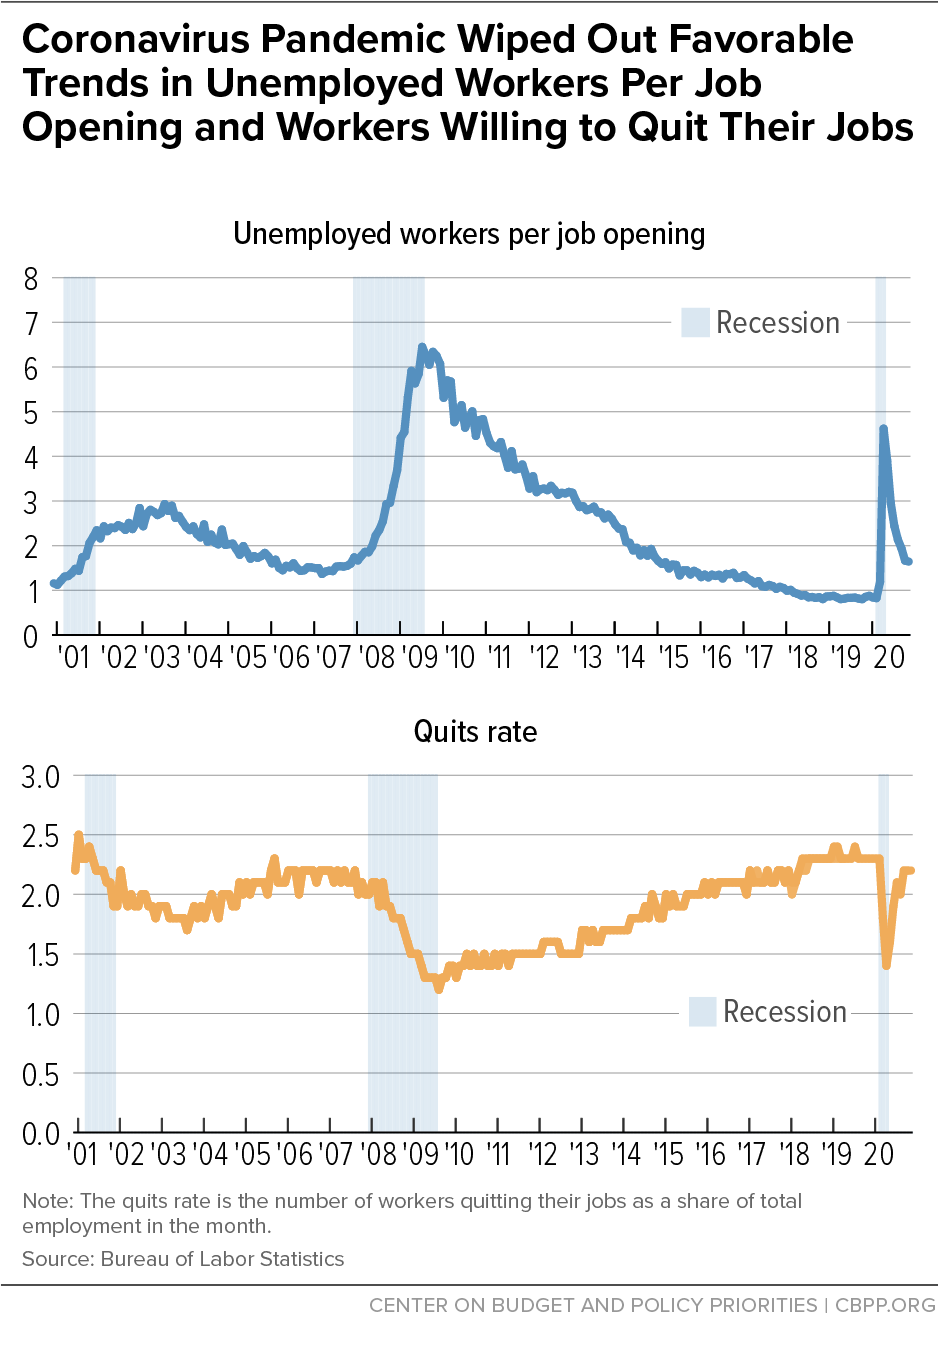 Coronavirus Pandemic Wiped Out Favorable Trends in Unemployed Workers Per Job Opening and Workers Willing to Quit Their Jobs